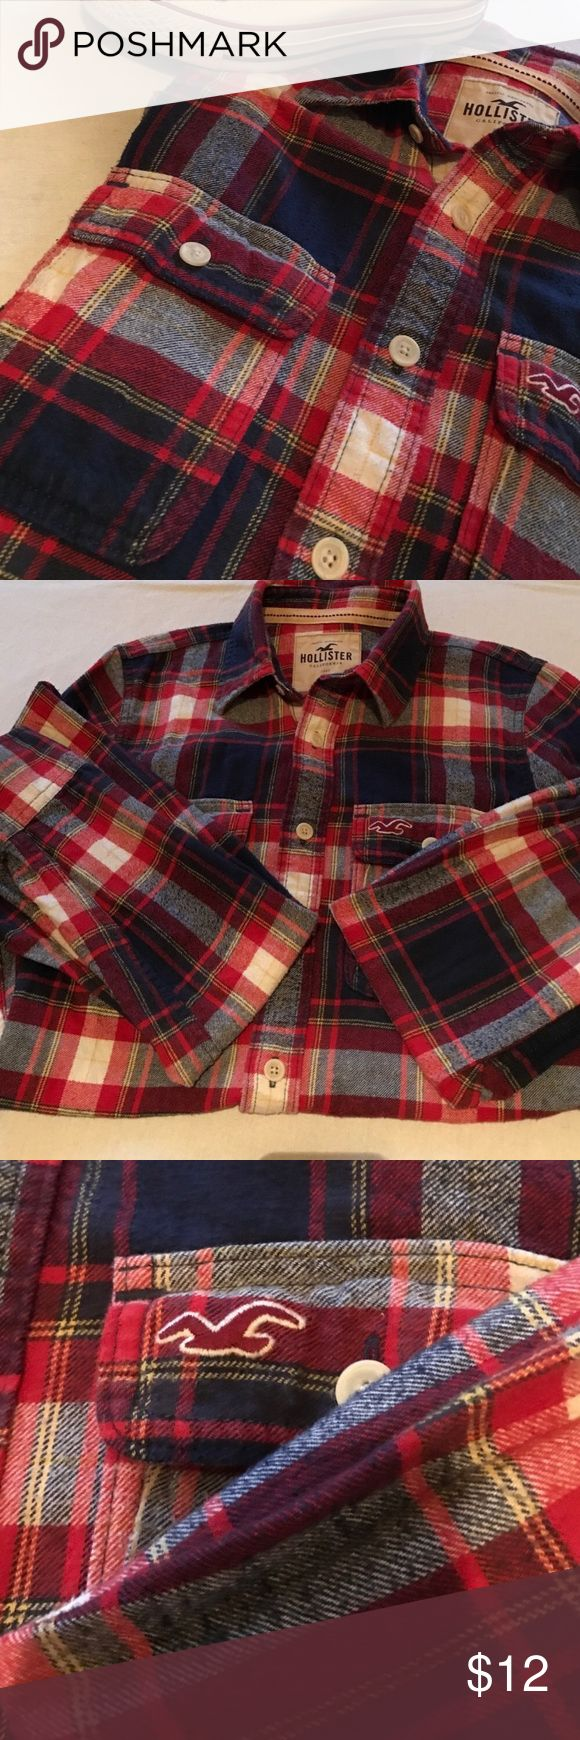 Hollister button down blue and red plaid shirt Excellent condition! No signs of wear. This shirt will look great with a pair of converse! 🌞☀️ Hollister Tops Button Down Shirts